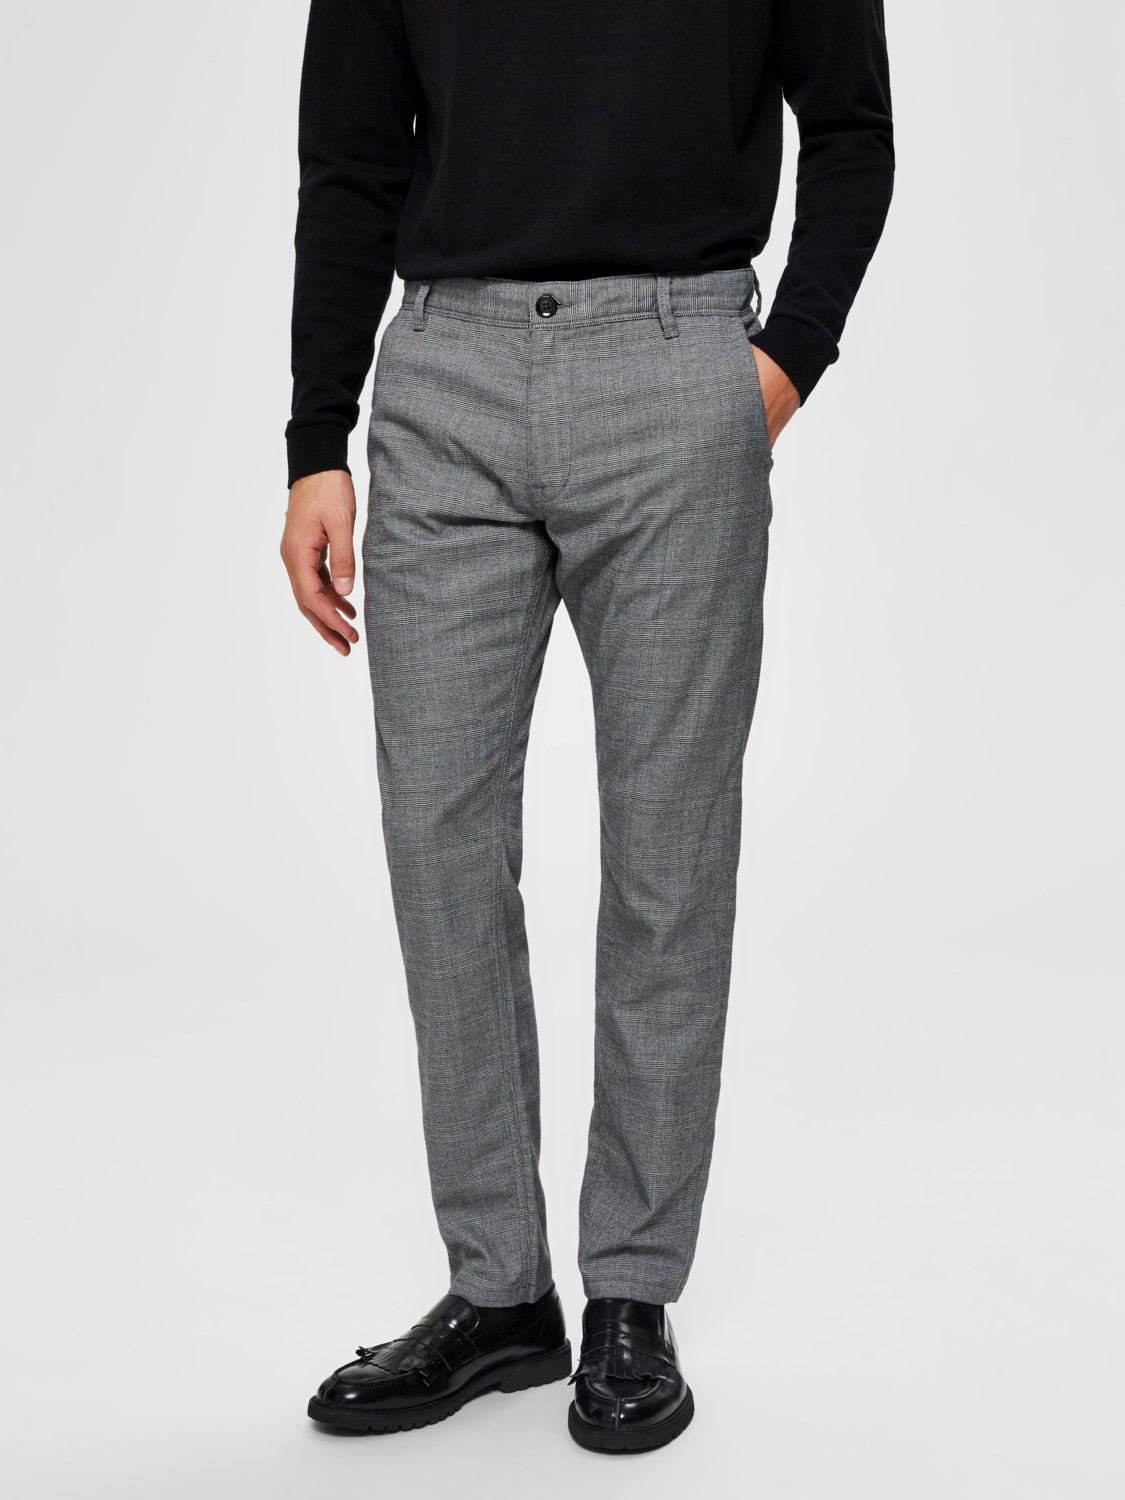 Chino Selected Storm Flex Pants